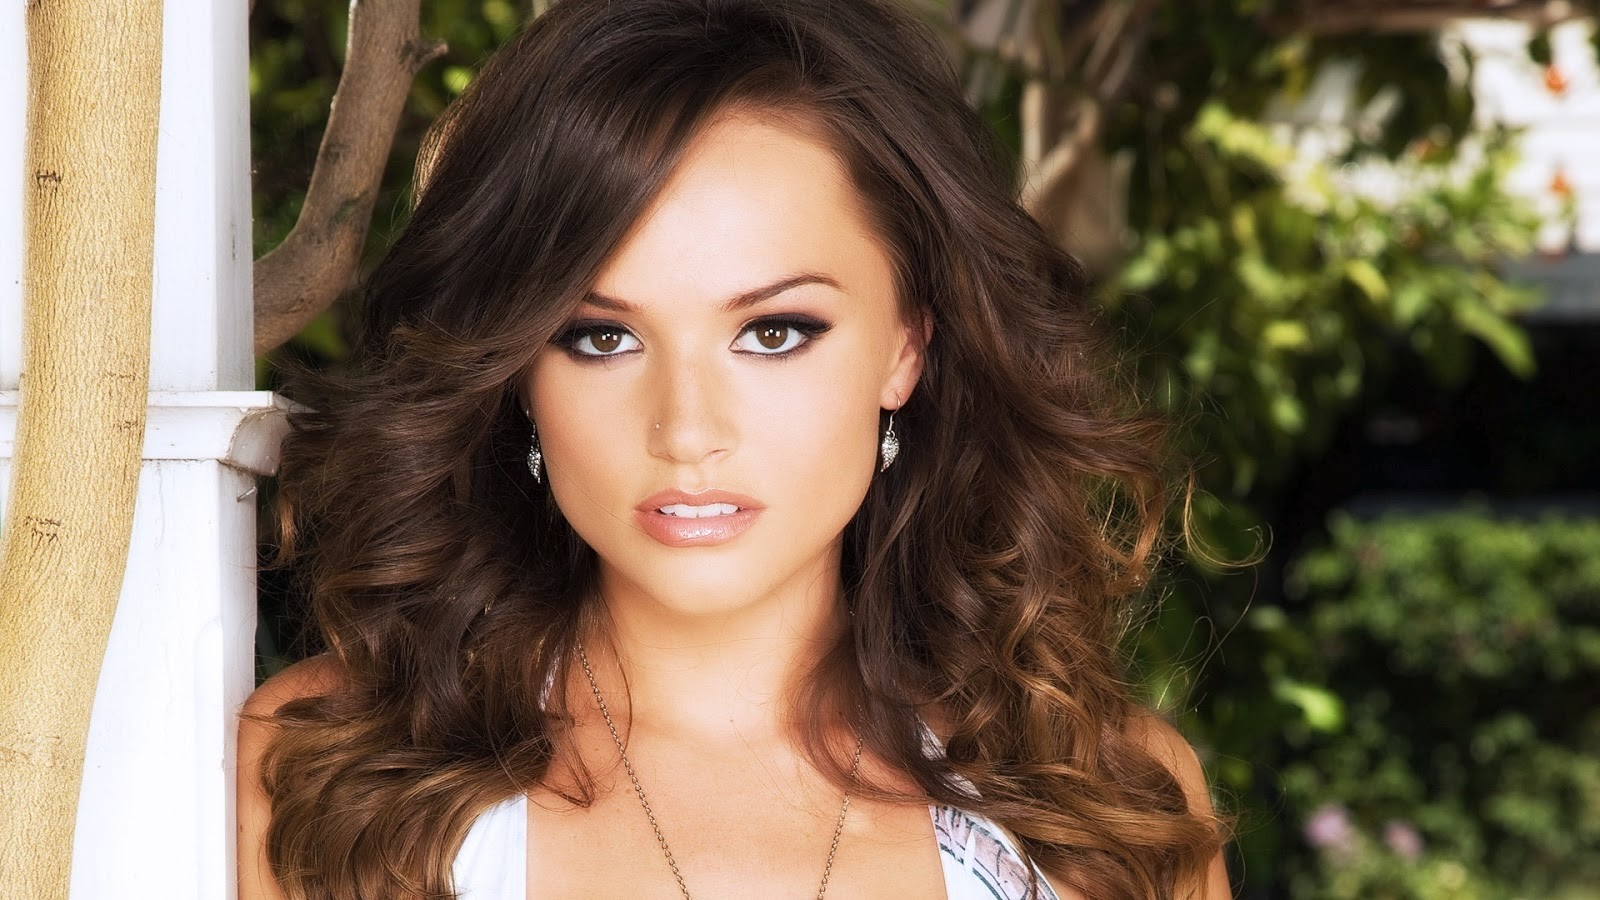 tori black pretty wallpaper